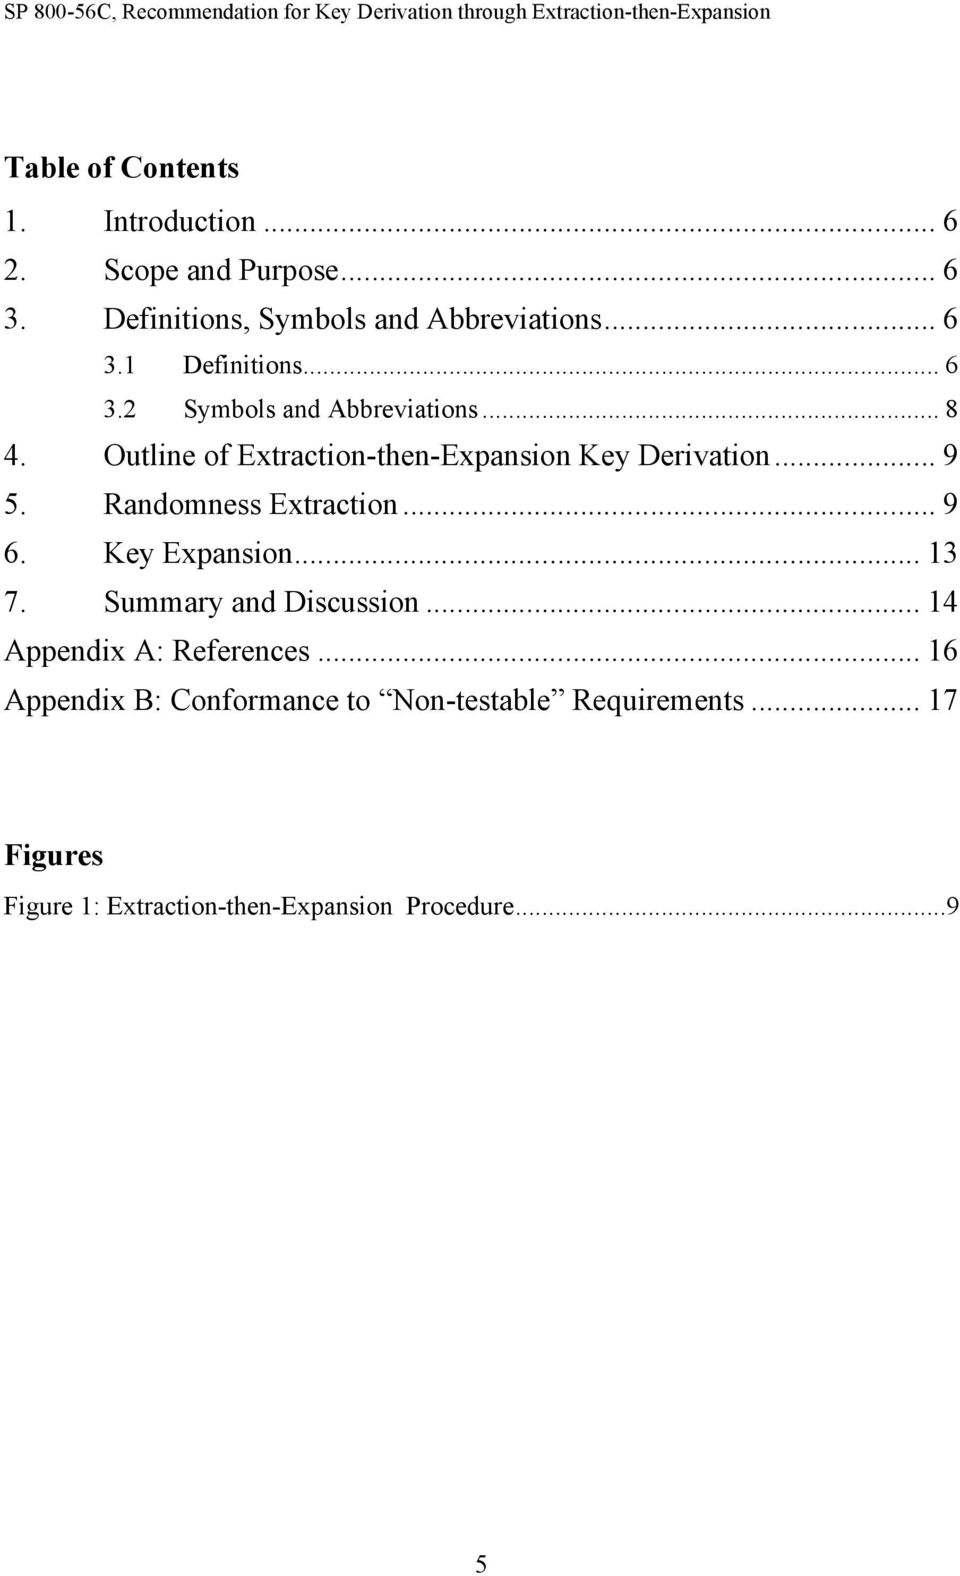 Randomness Extraction... 9 6. Key Expansion... 13 7. Summary and Discussion... 14 Appendix A: References.